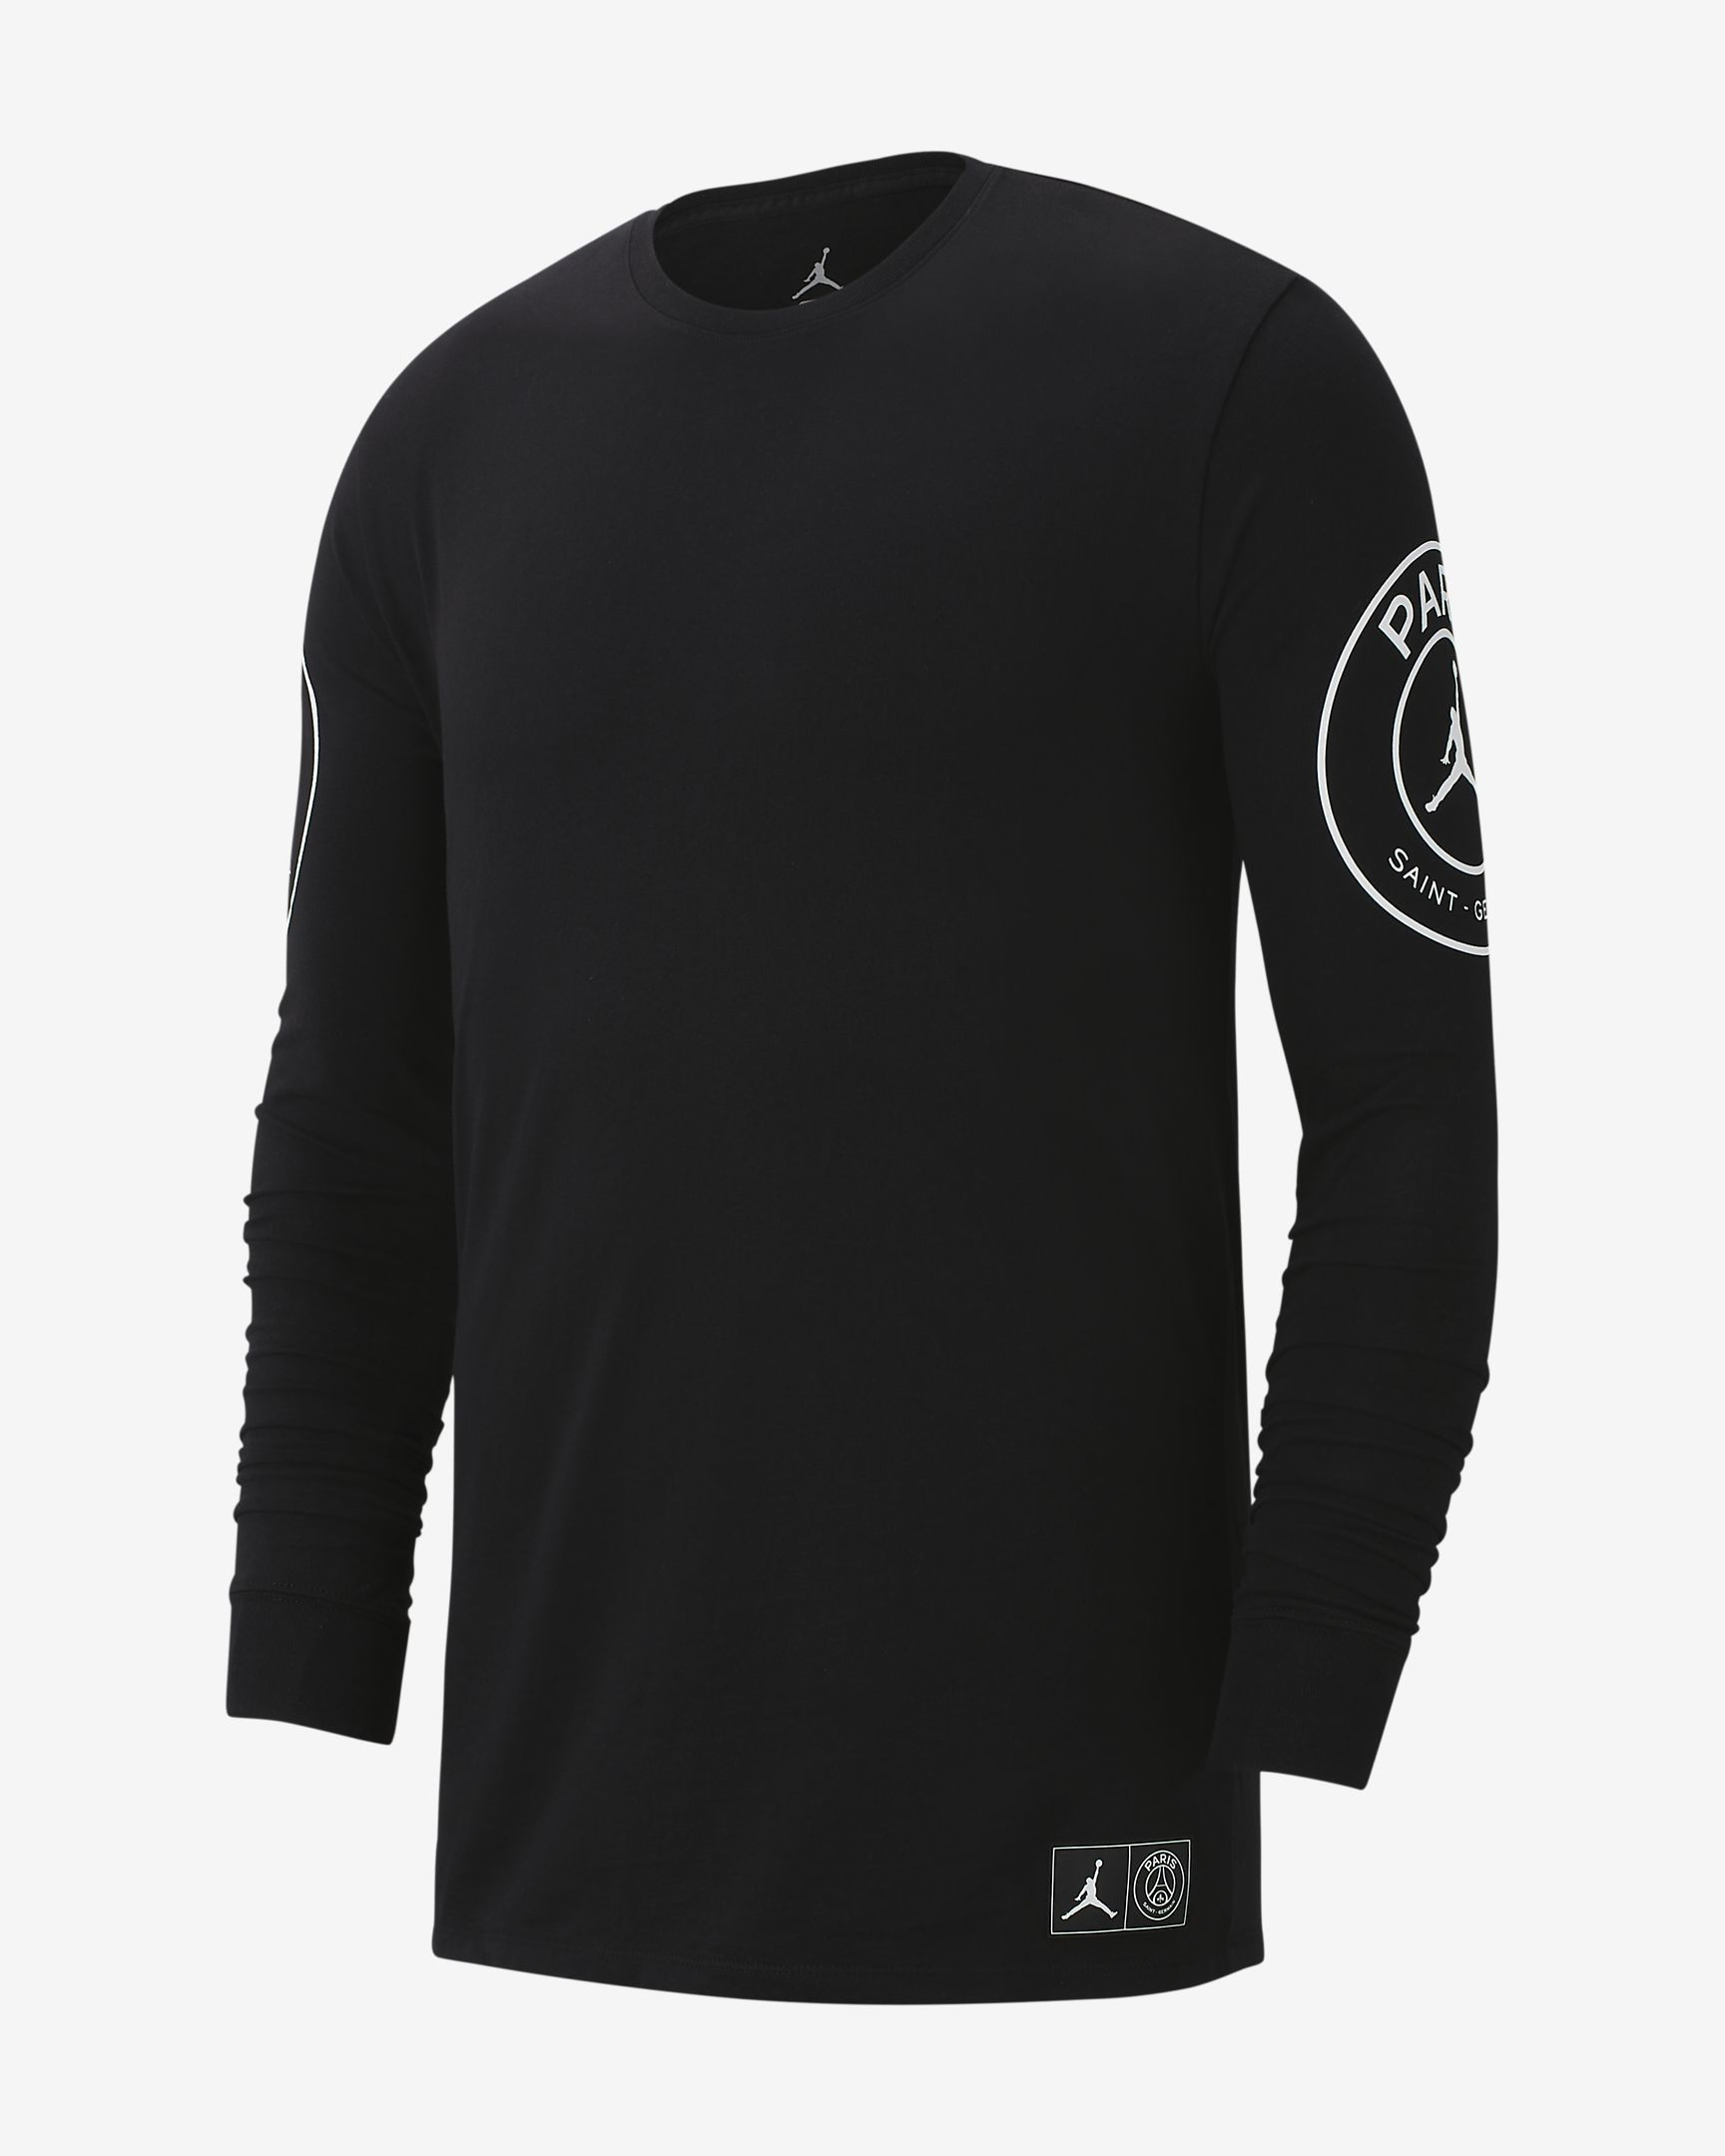 Paris Saint Germain x Jordan - long sleeve tee  9c8a3761d